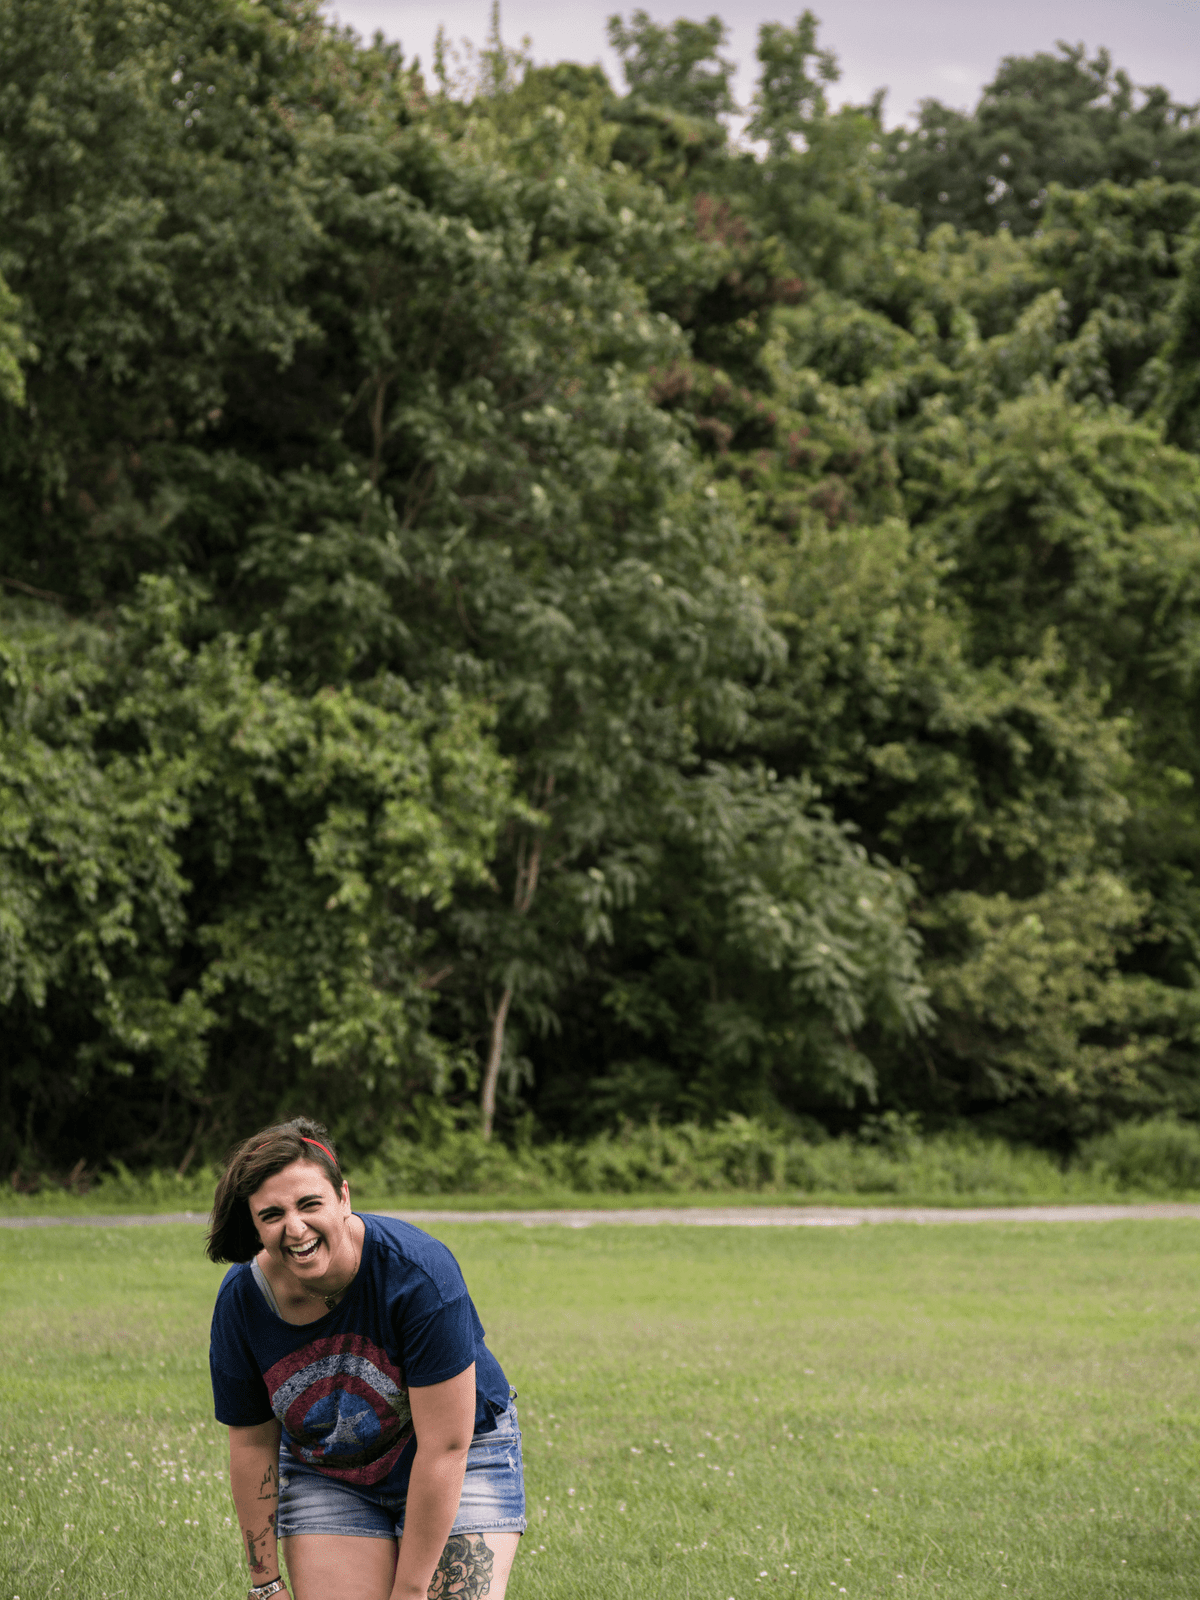 An image of Naseem, a nonbinary brown-haired person wearing a blue Captain America shirt, red headband, and jean shorts. They are laughing, bent over, and on a stretch of grass with trees behind them.